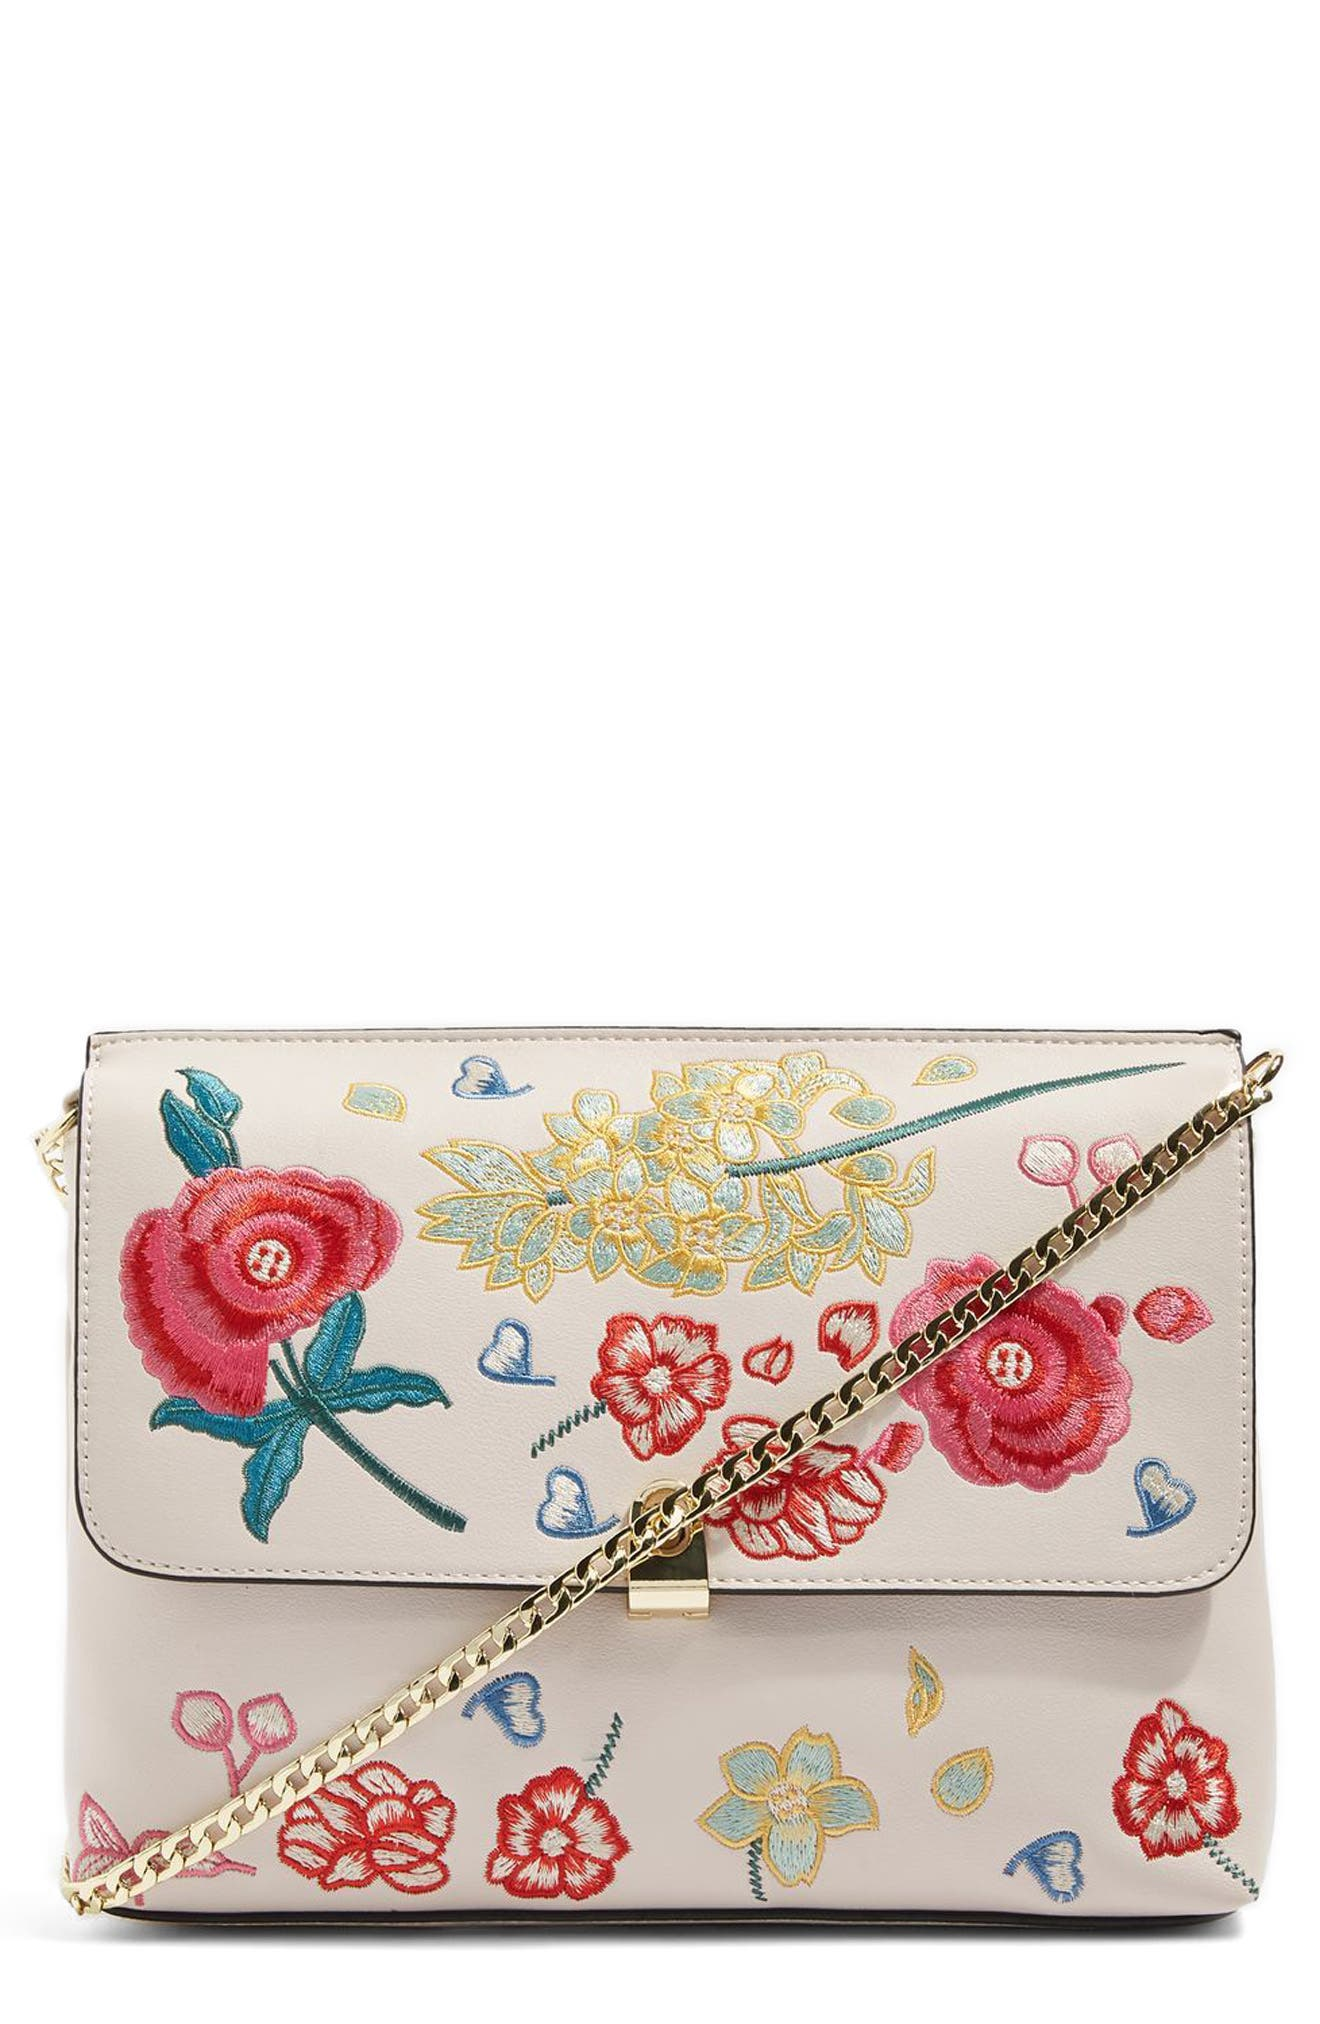 Topshop Floral Embroidered Faux Leather Crossbody Bag